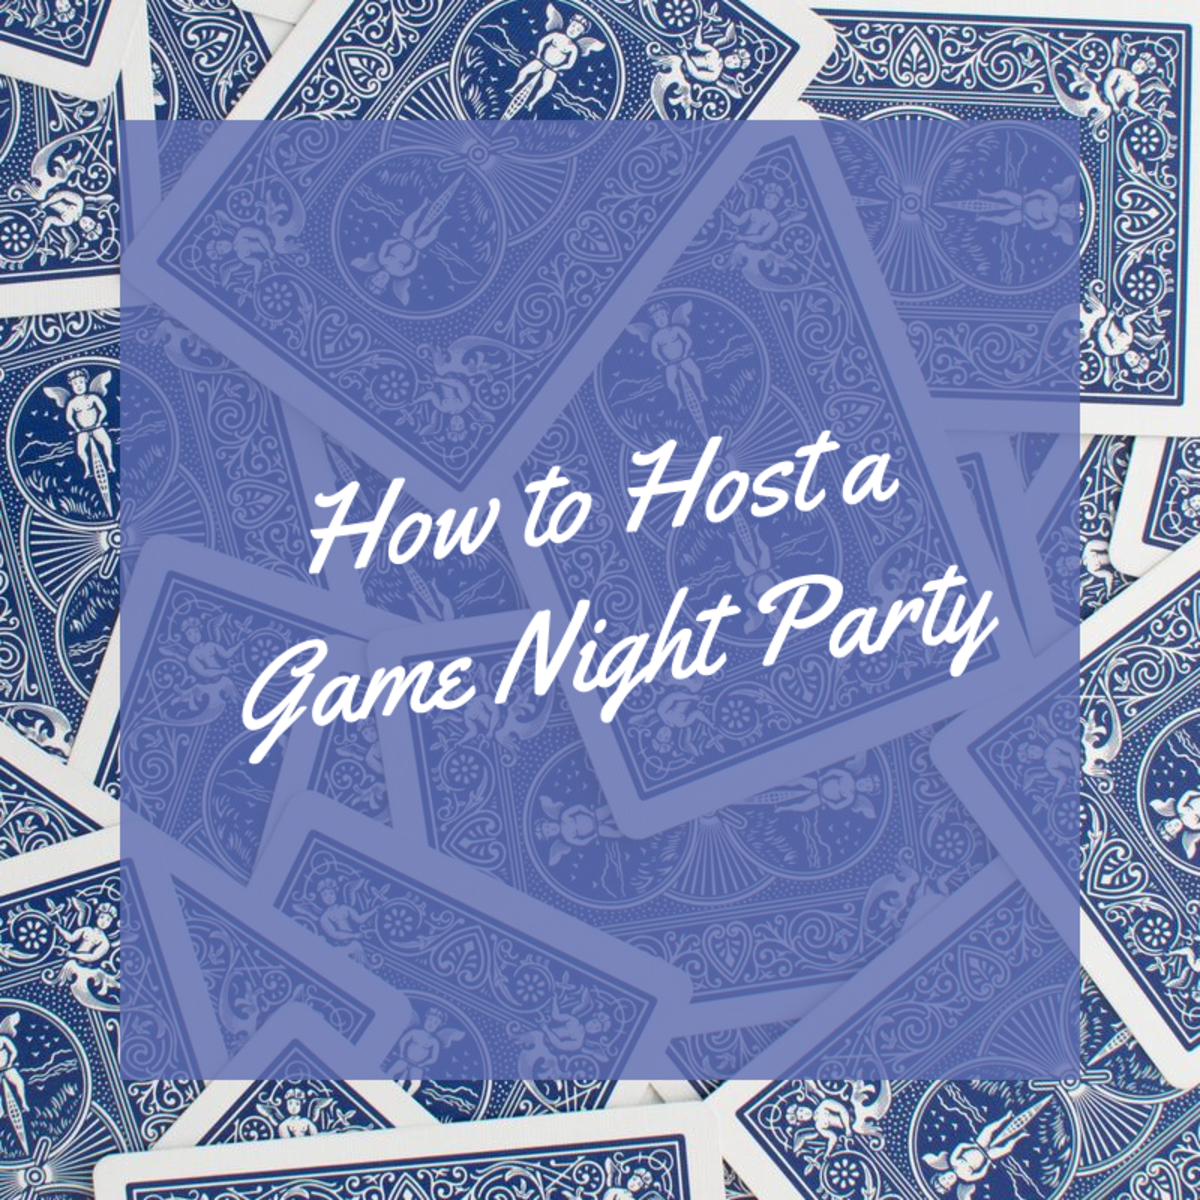 Bored with hosting the same old parties? These tips and tricks will break you out of your funk.